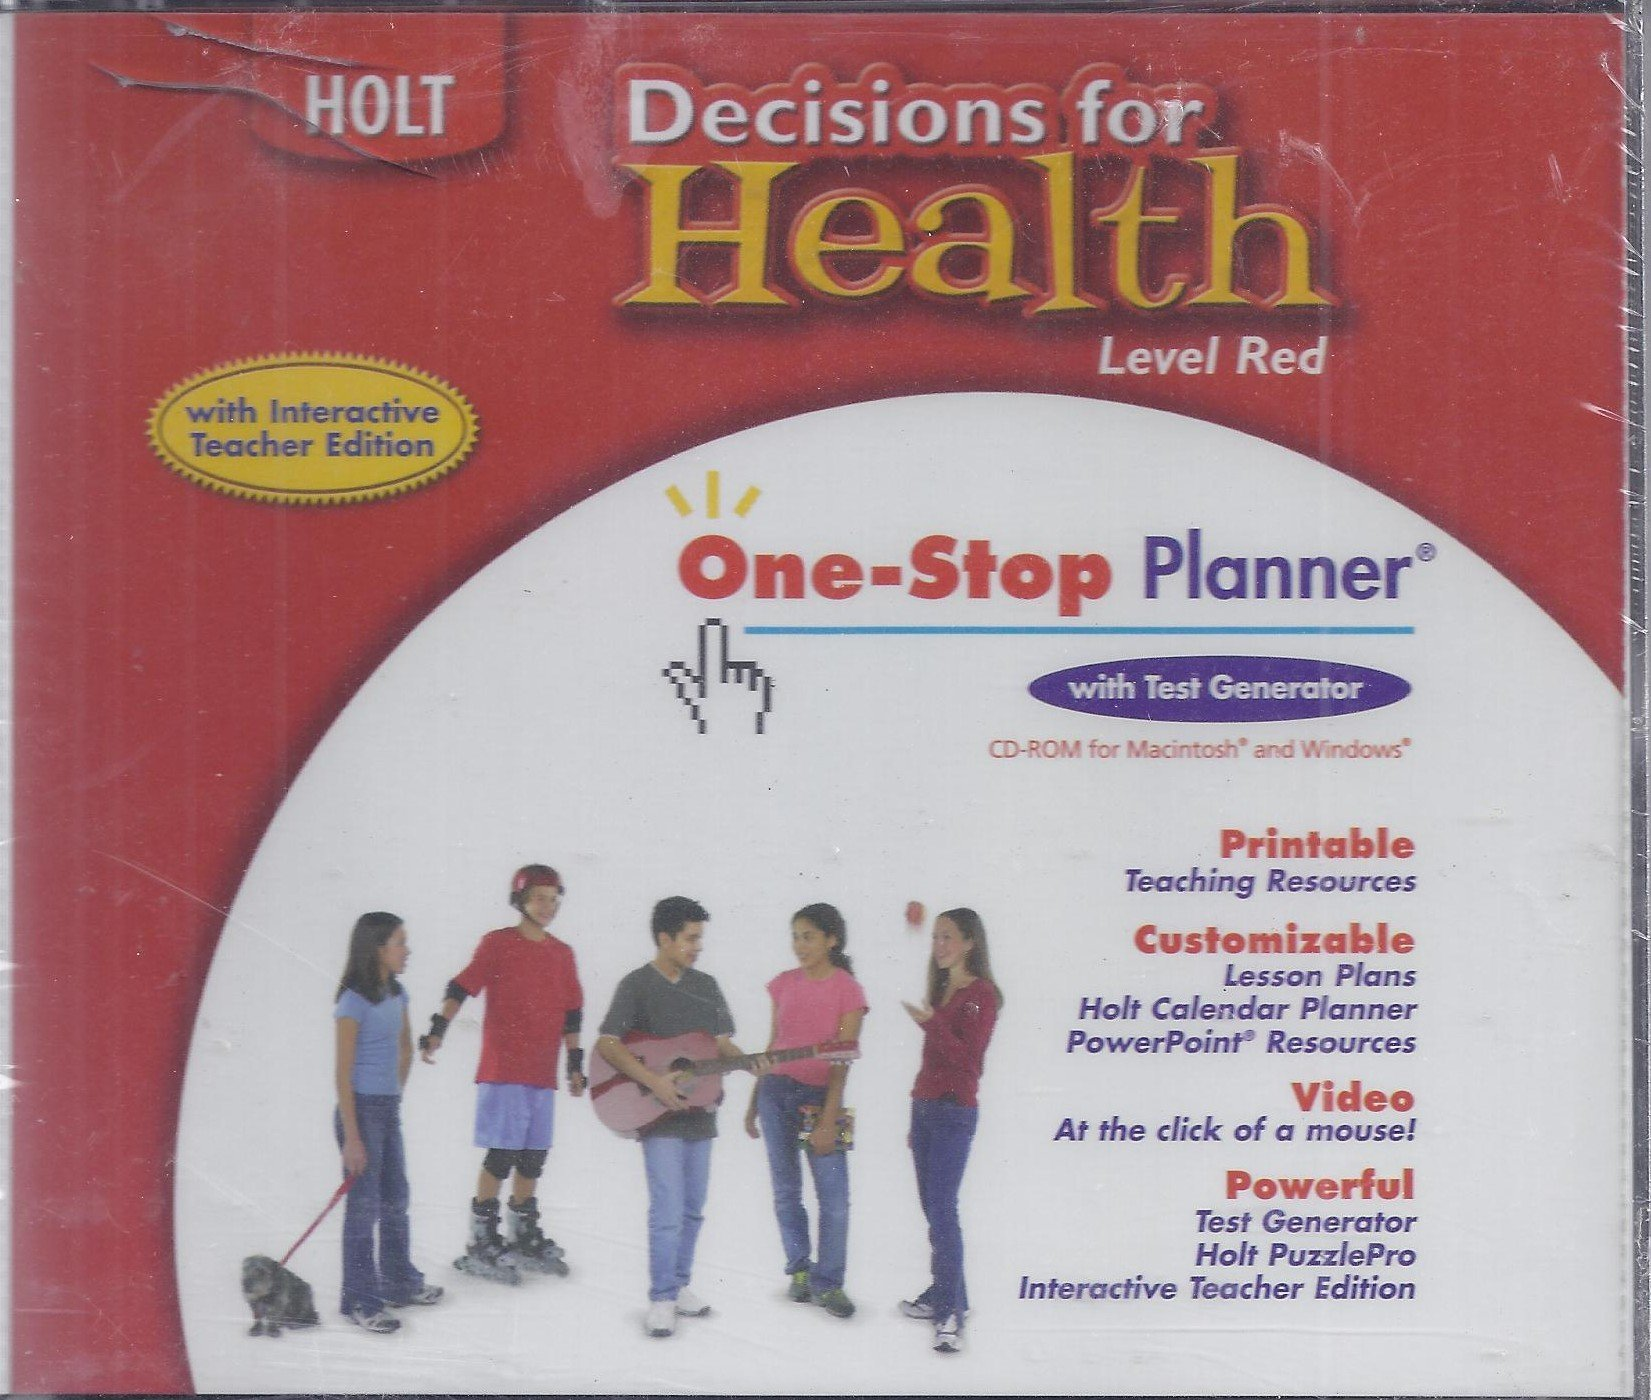 Download Decisions for Health: Level Red (One-Stop Planner with Test Generator) pdf